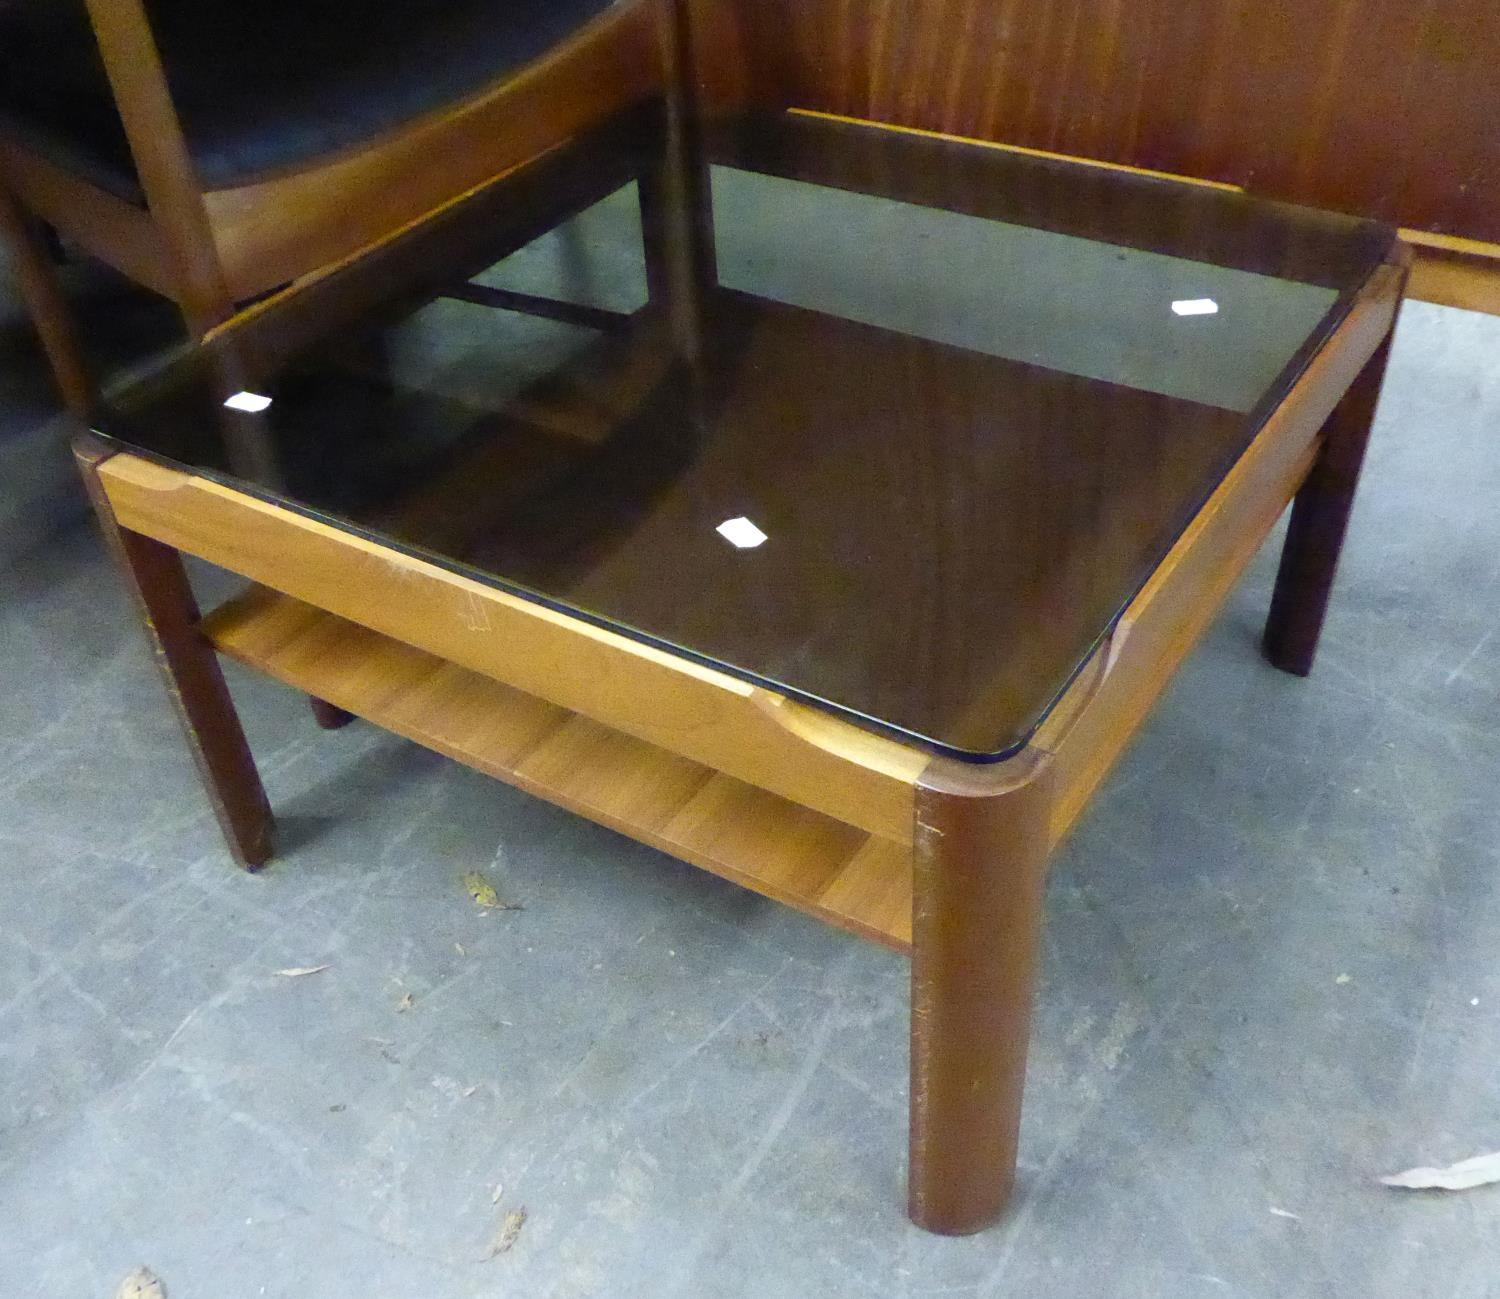 1960's/70's TEAK OBLONG COFFEE TABLE, WITH SMOKED GLASS TOP AND A MATCHING SQUARE COFFEE TABLE - Image 2 of 2